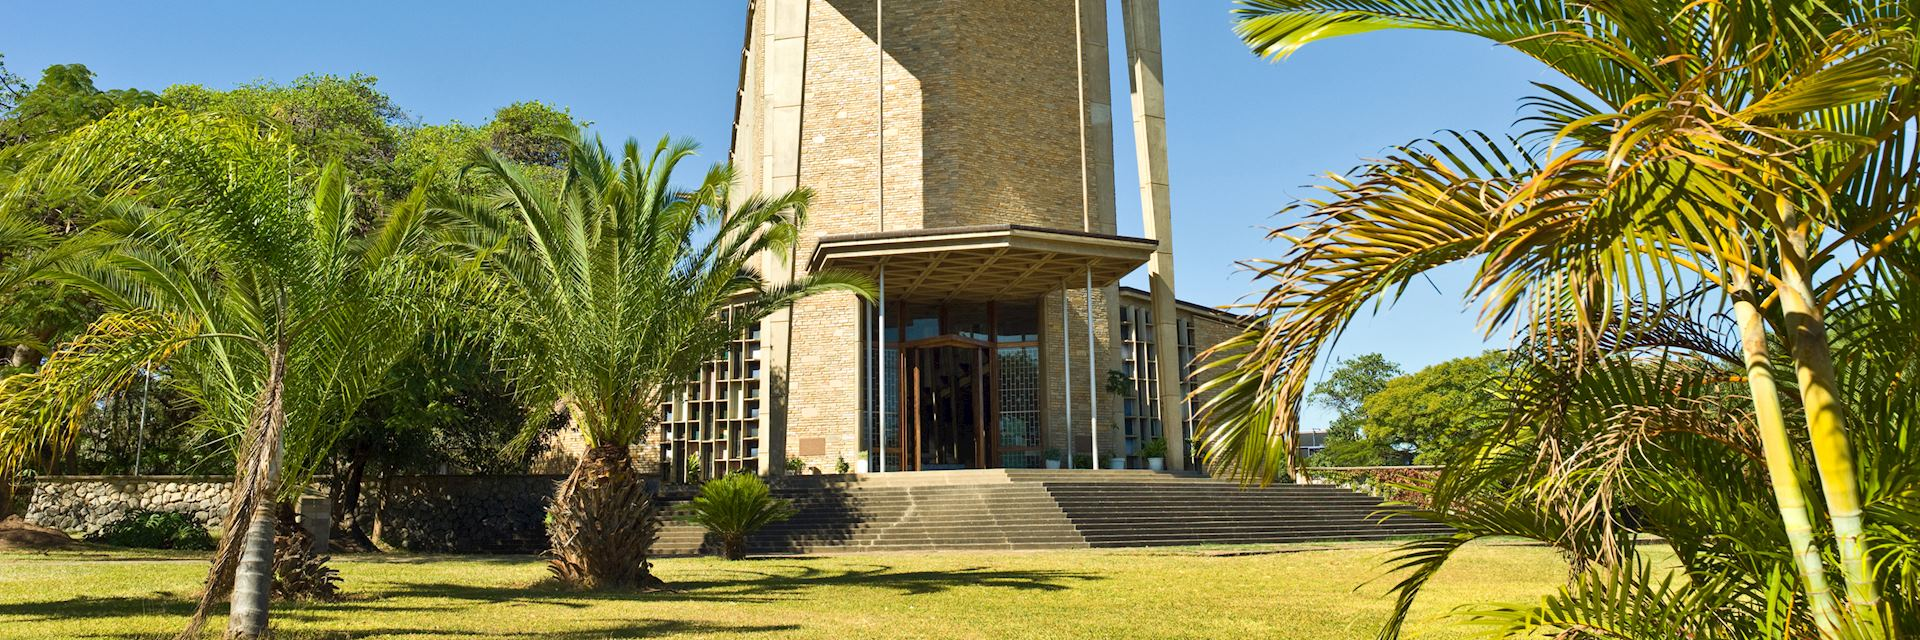 Anglican Cathedral of the Holy Cross, Lusaka